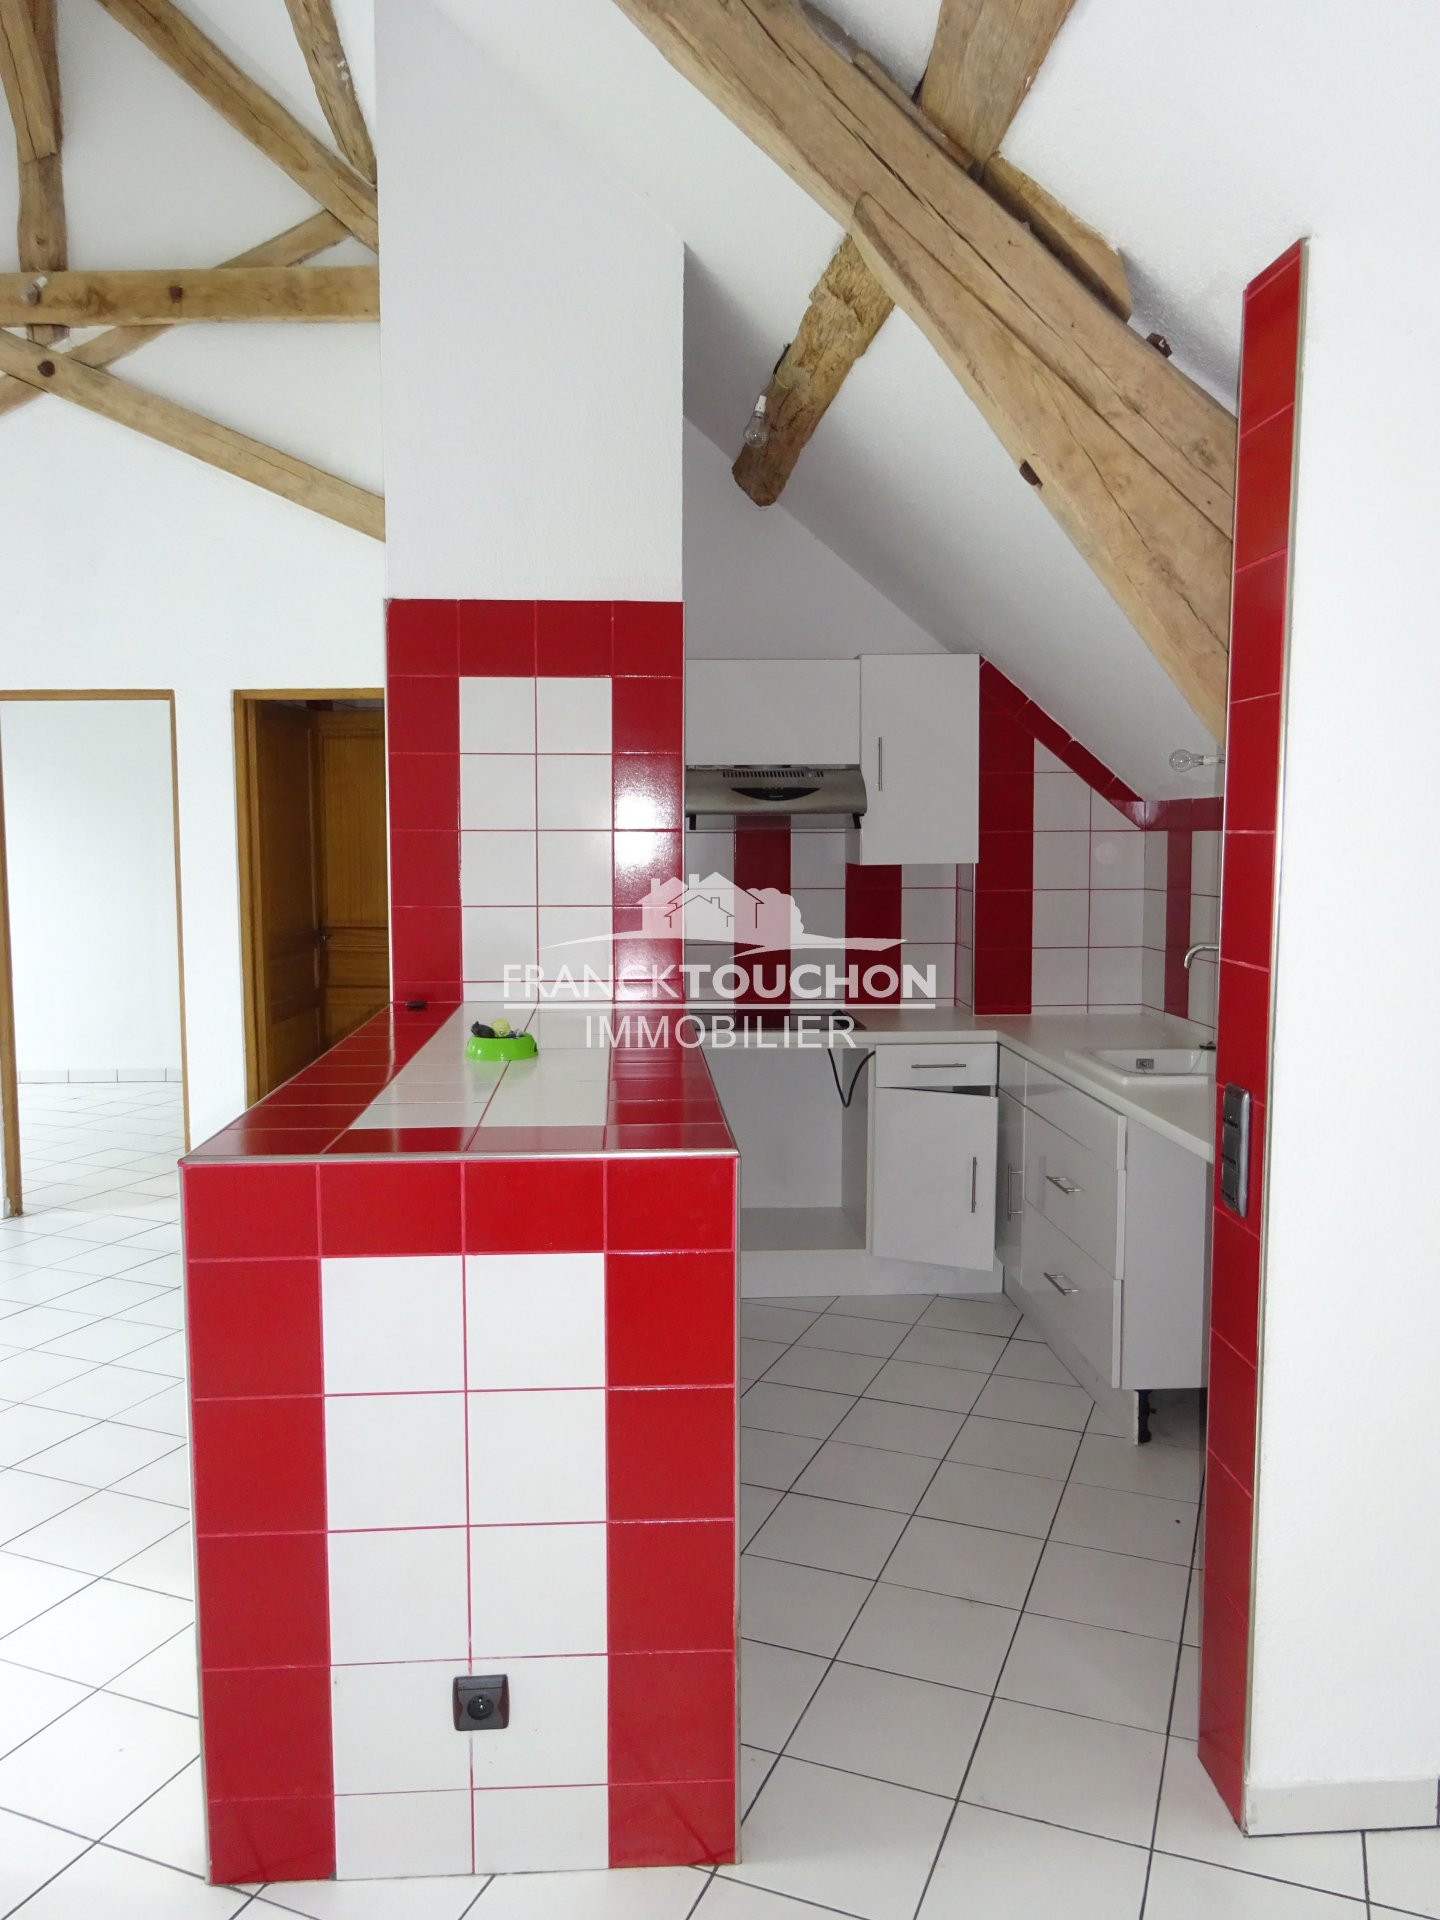 PROPRIETE de charme - potentiel - 1h de PARIS - 30 min de FONTAINEBLEAU - SUD 77 - 493 m² dont 1 appartement de 75 m² hab